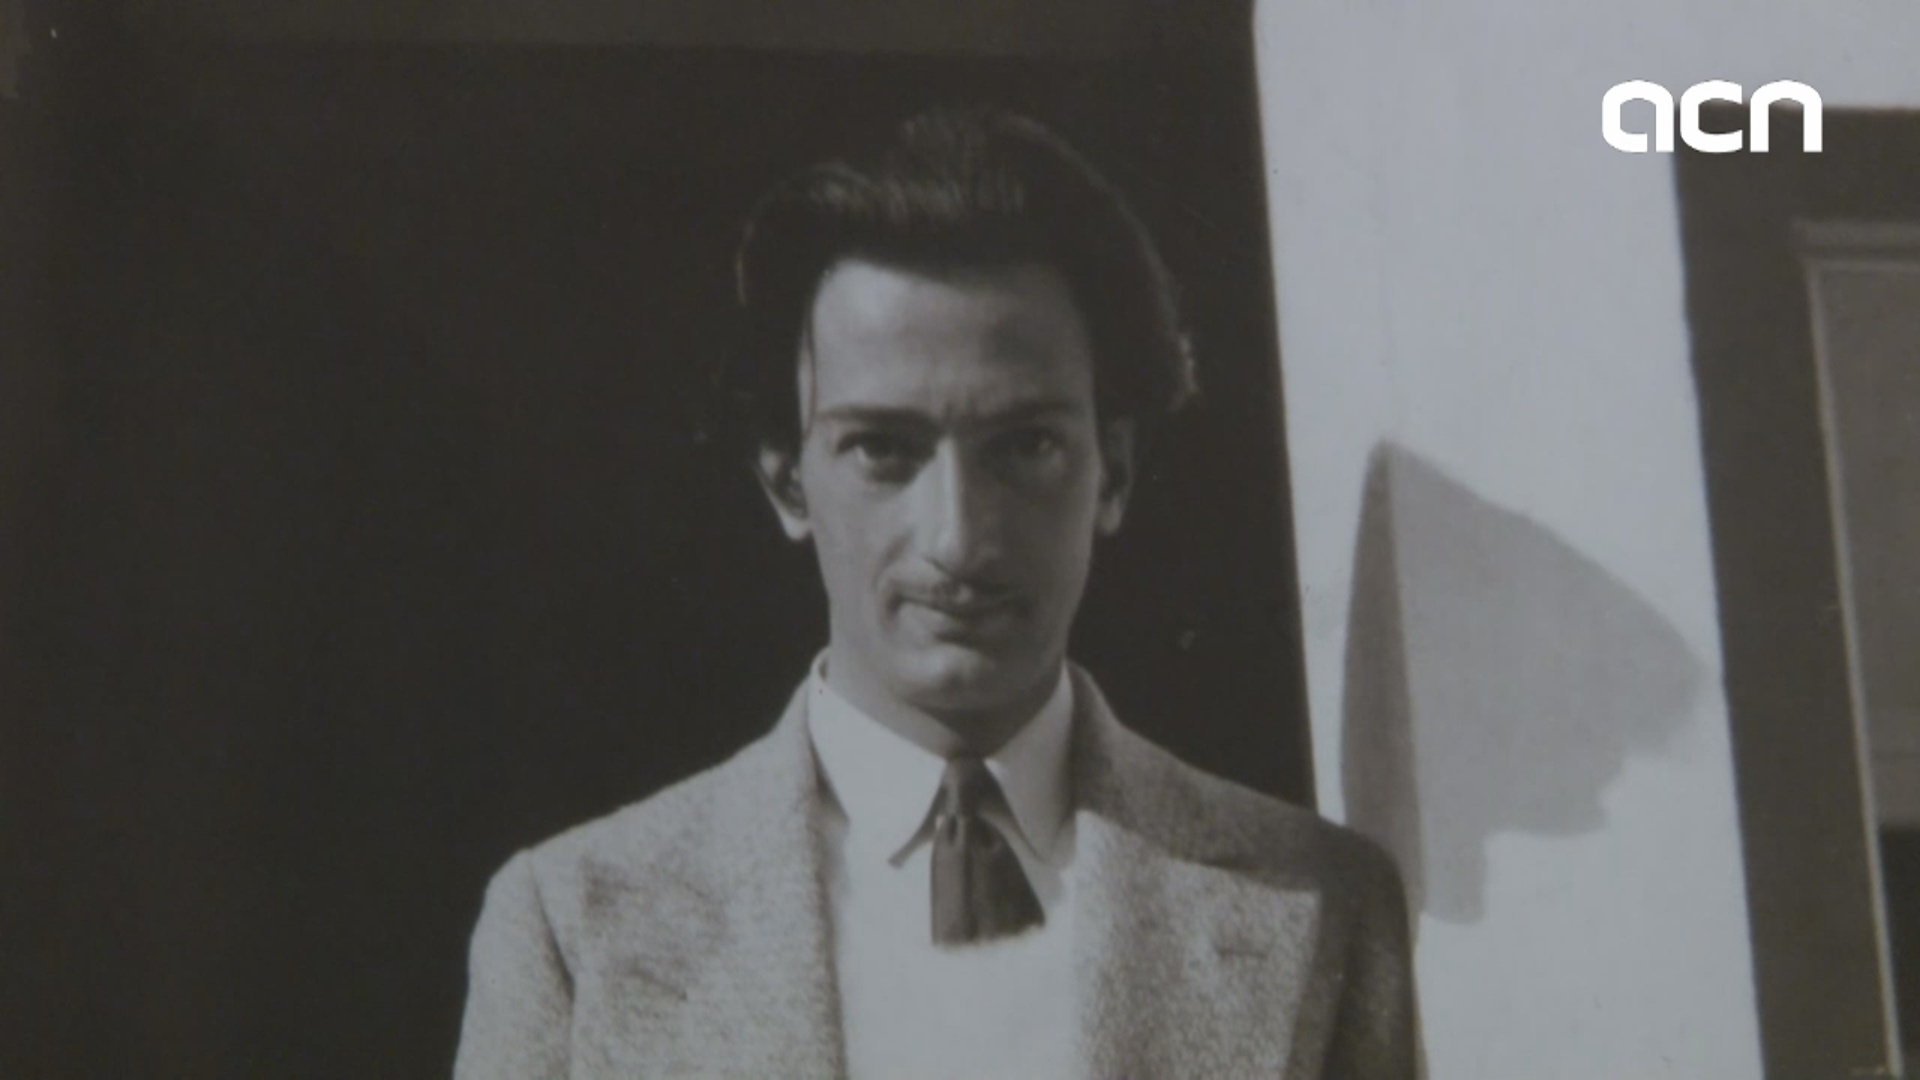 Dalí photographed by women